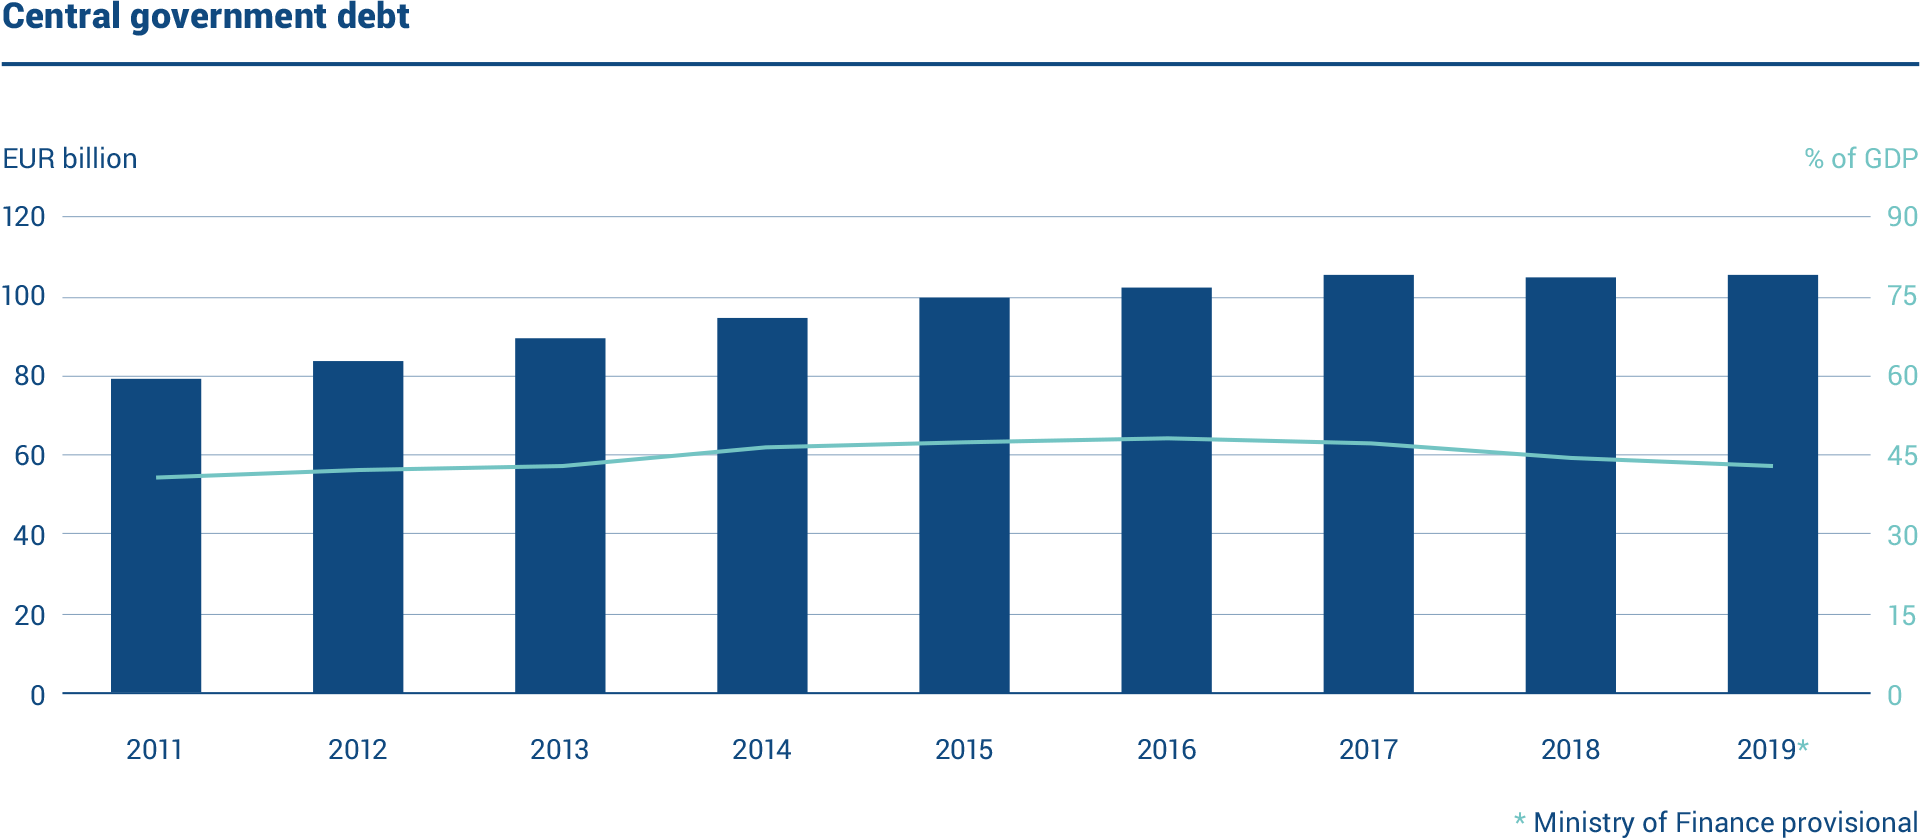 The graph shows the volume of Finland's central government debt and debt in relation to GDP in 2011–19. The central government debt was EUR 106.4 billion at the end of 2019. The debt-to-GDP ratio was 44%.